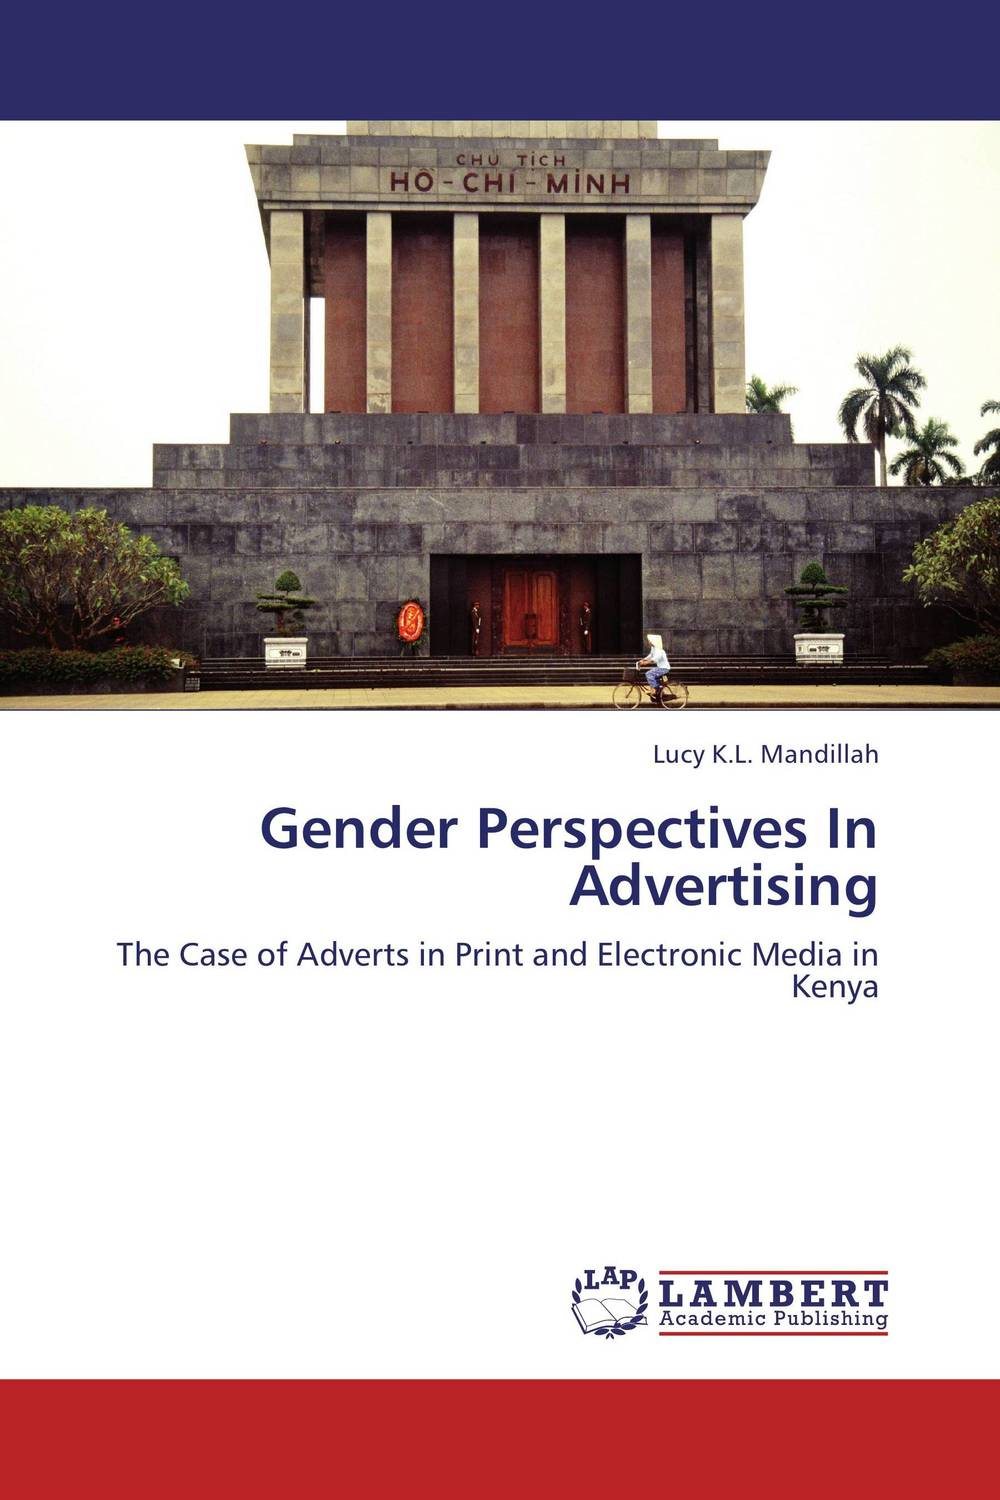 Gender Perspectives In Advertising